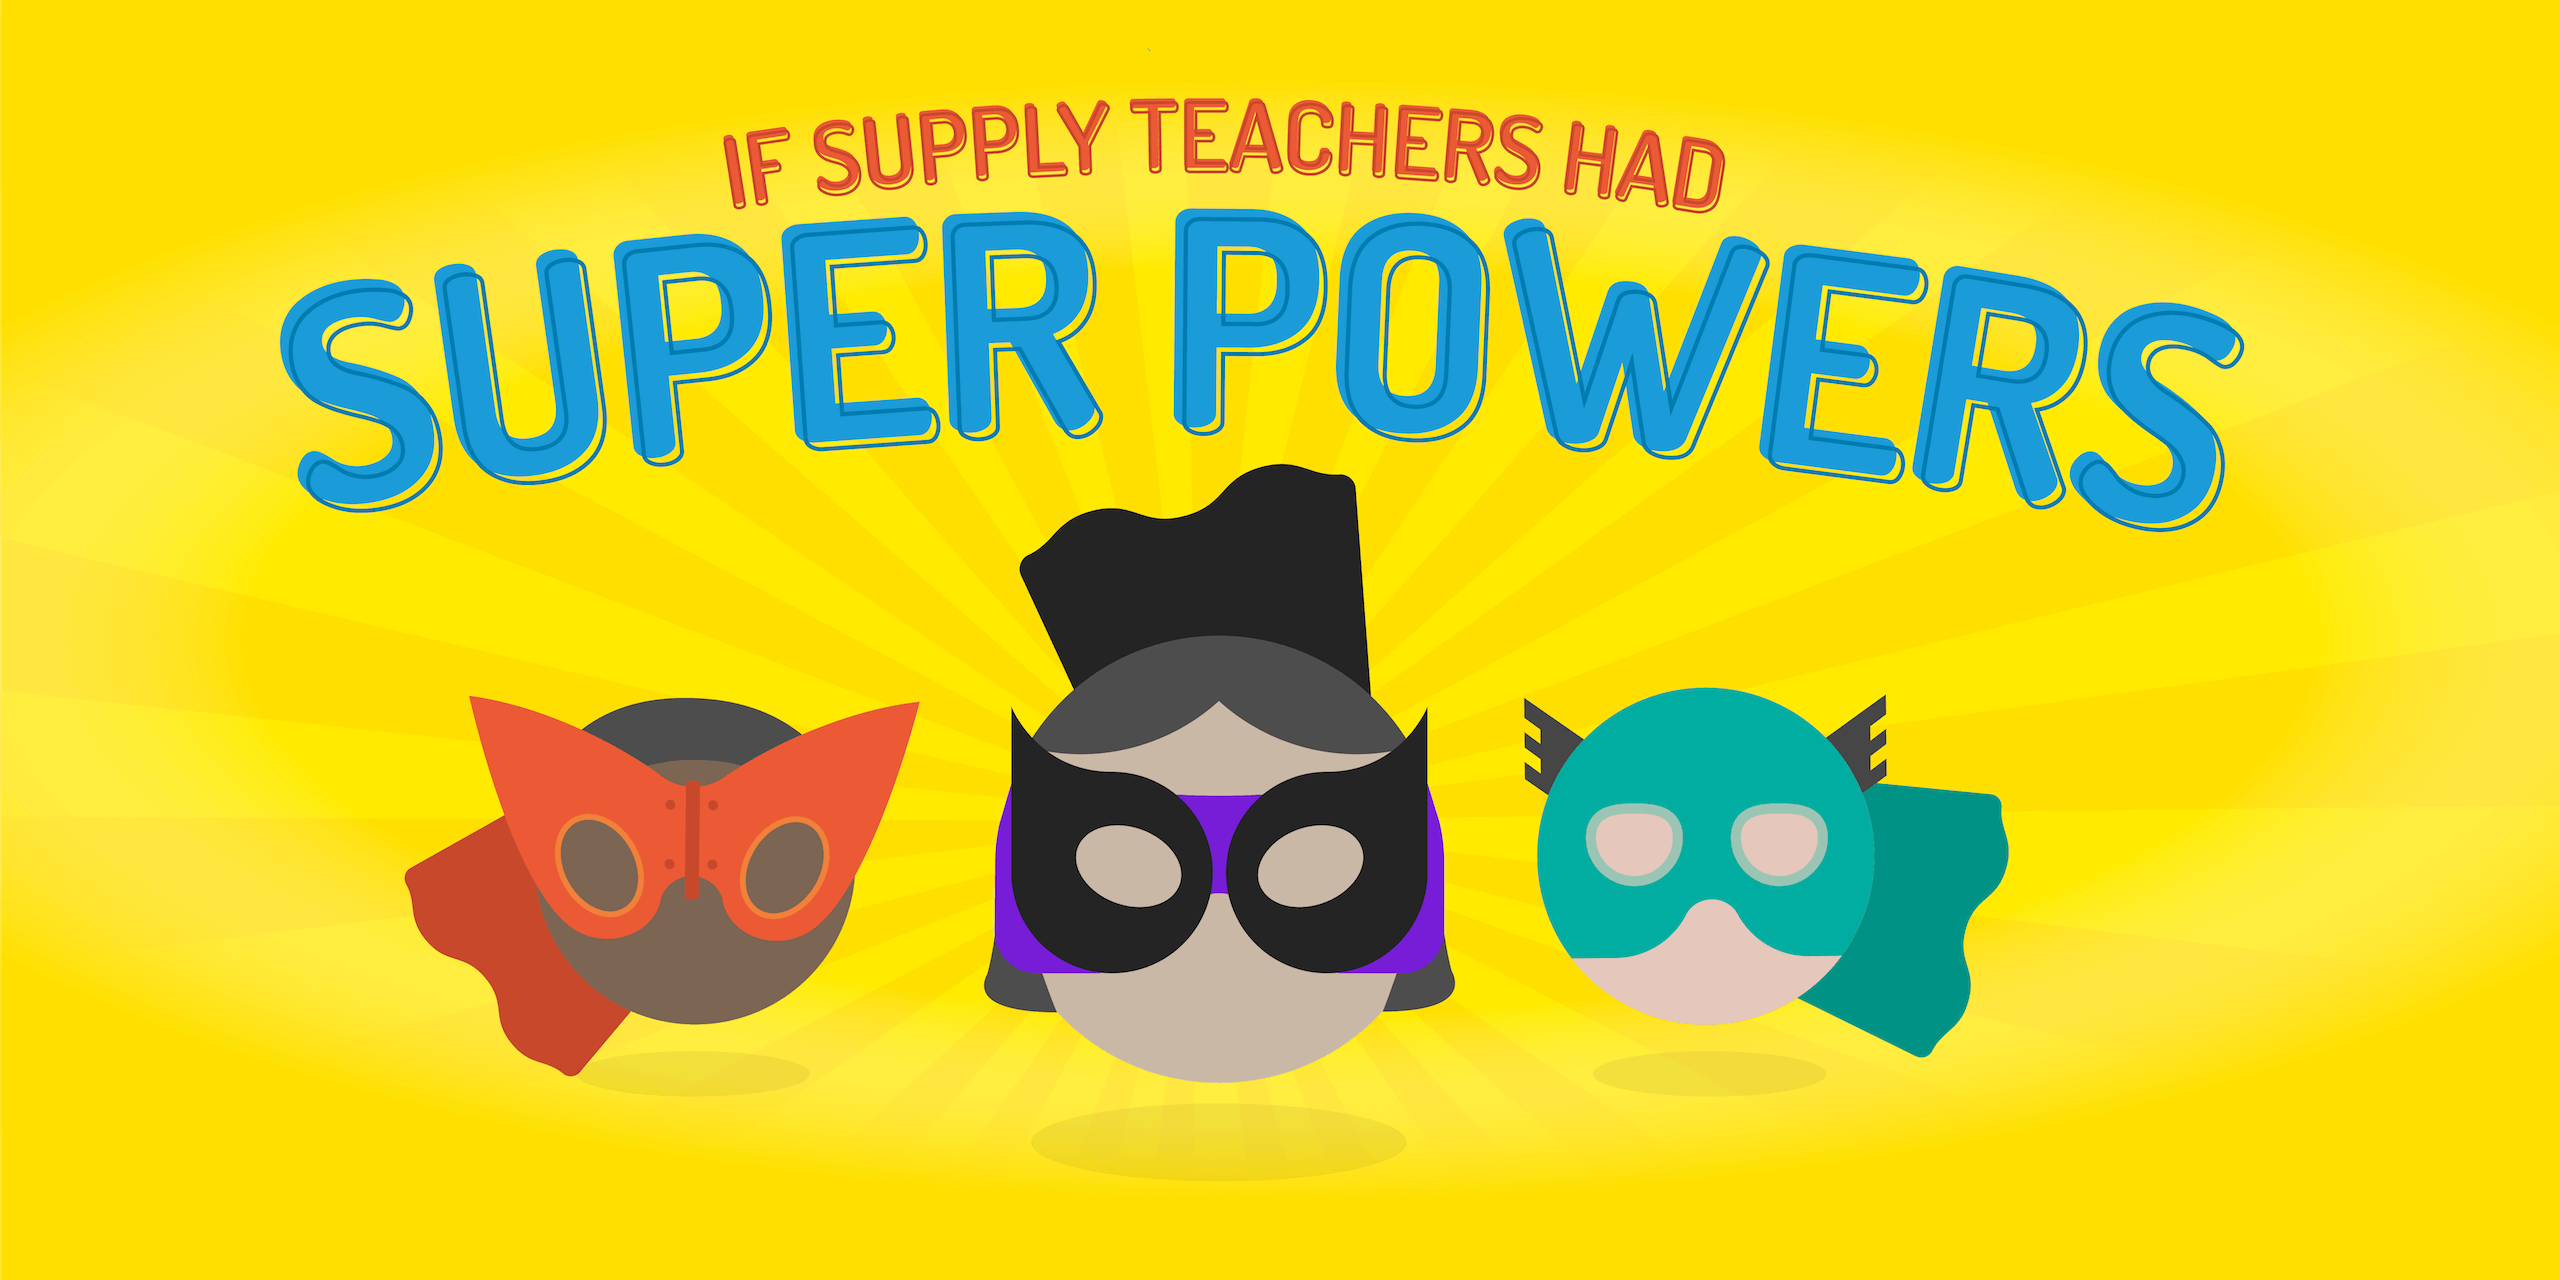 """Illustration of three super heroes, with the text """"If Supply Teachers had Super Powers"""""""